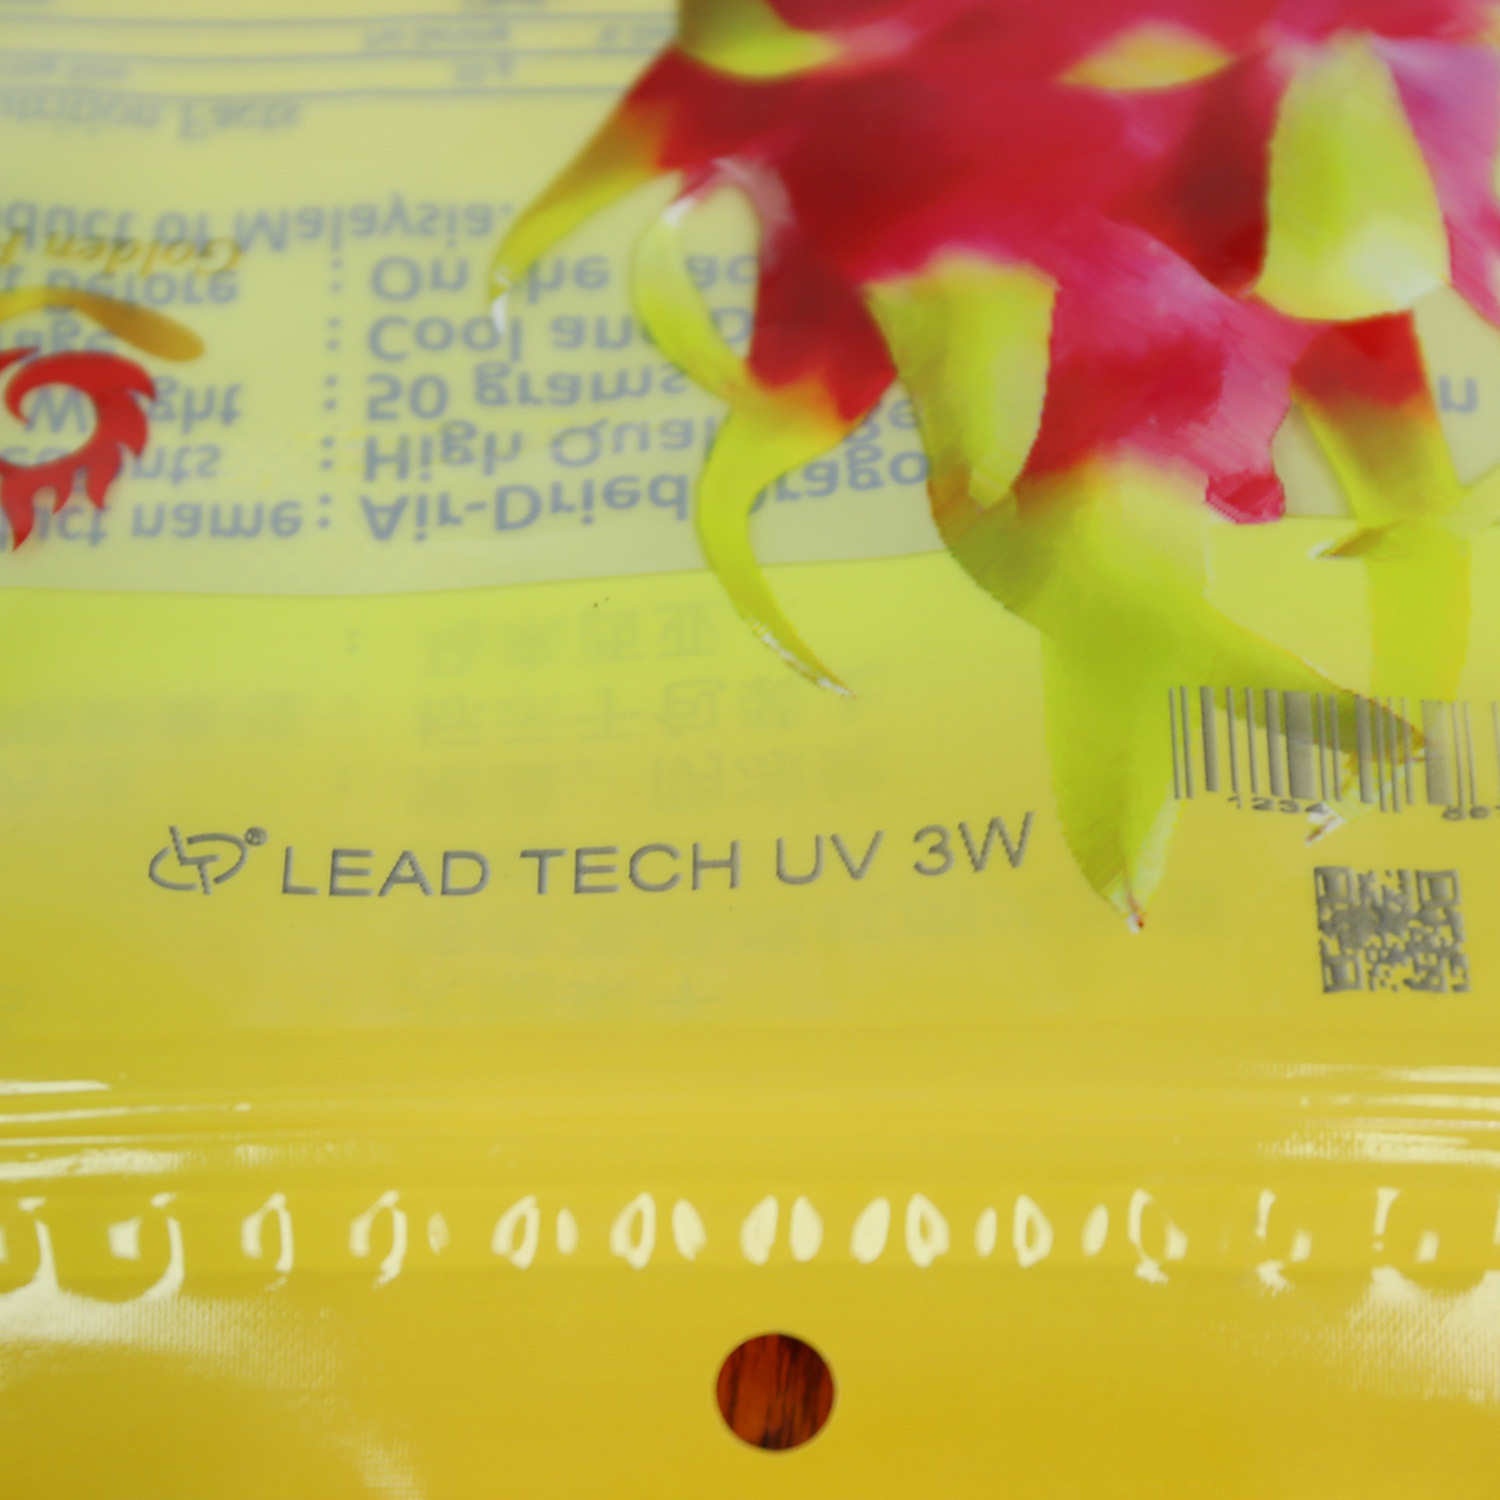 Lead Tech Lt8003u/Lt8005u UV 3W/5W Style Digital Laser Printer for Plastic Logo Metal Printing